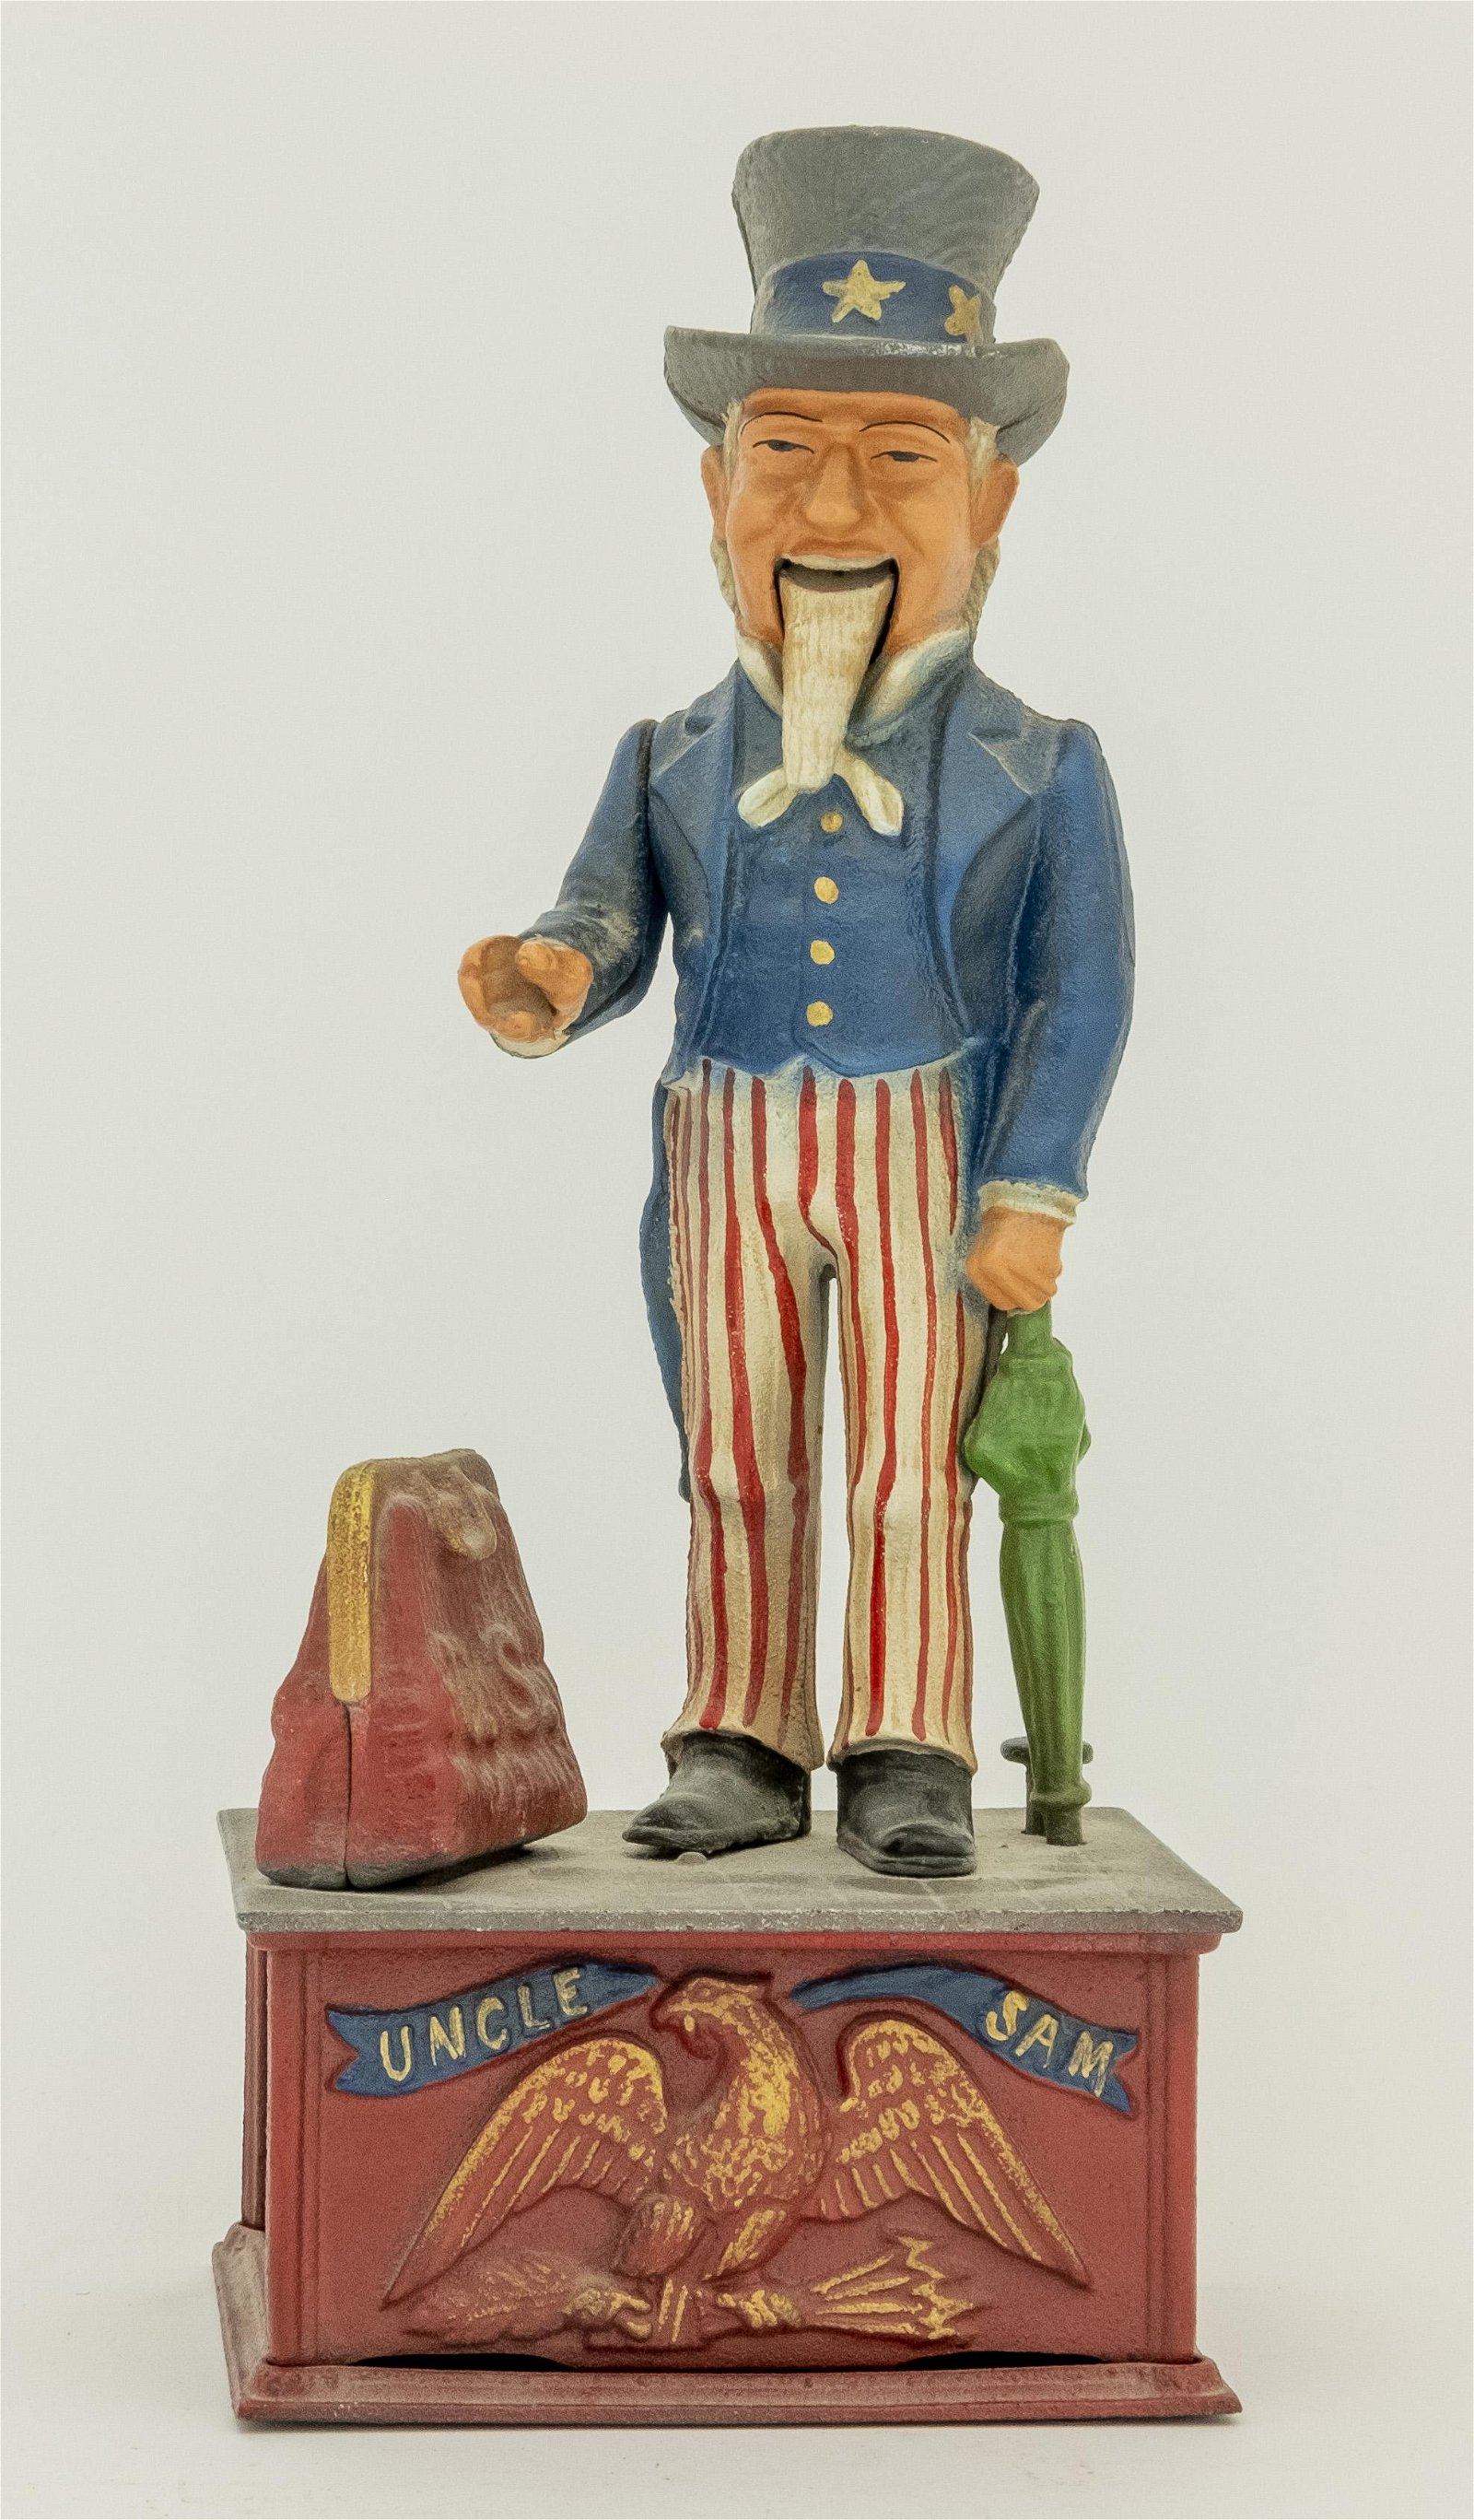 Rare Uncle Sam Iron Mechanical Bank